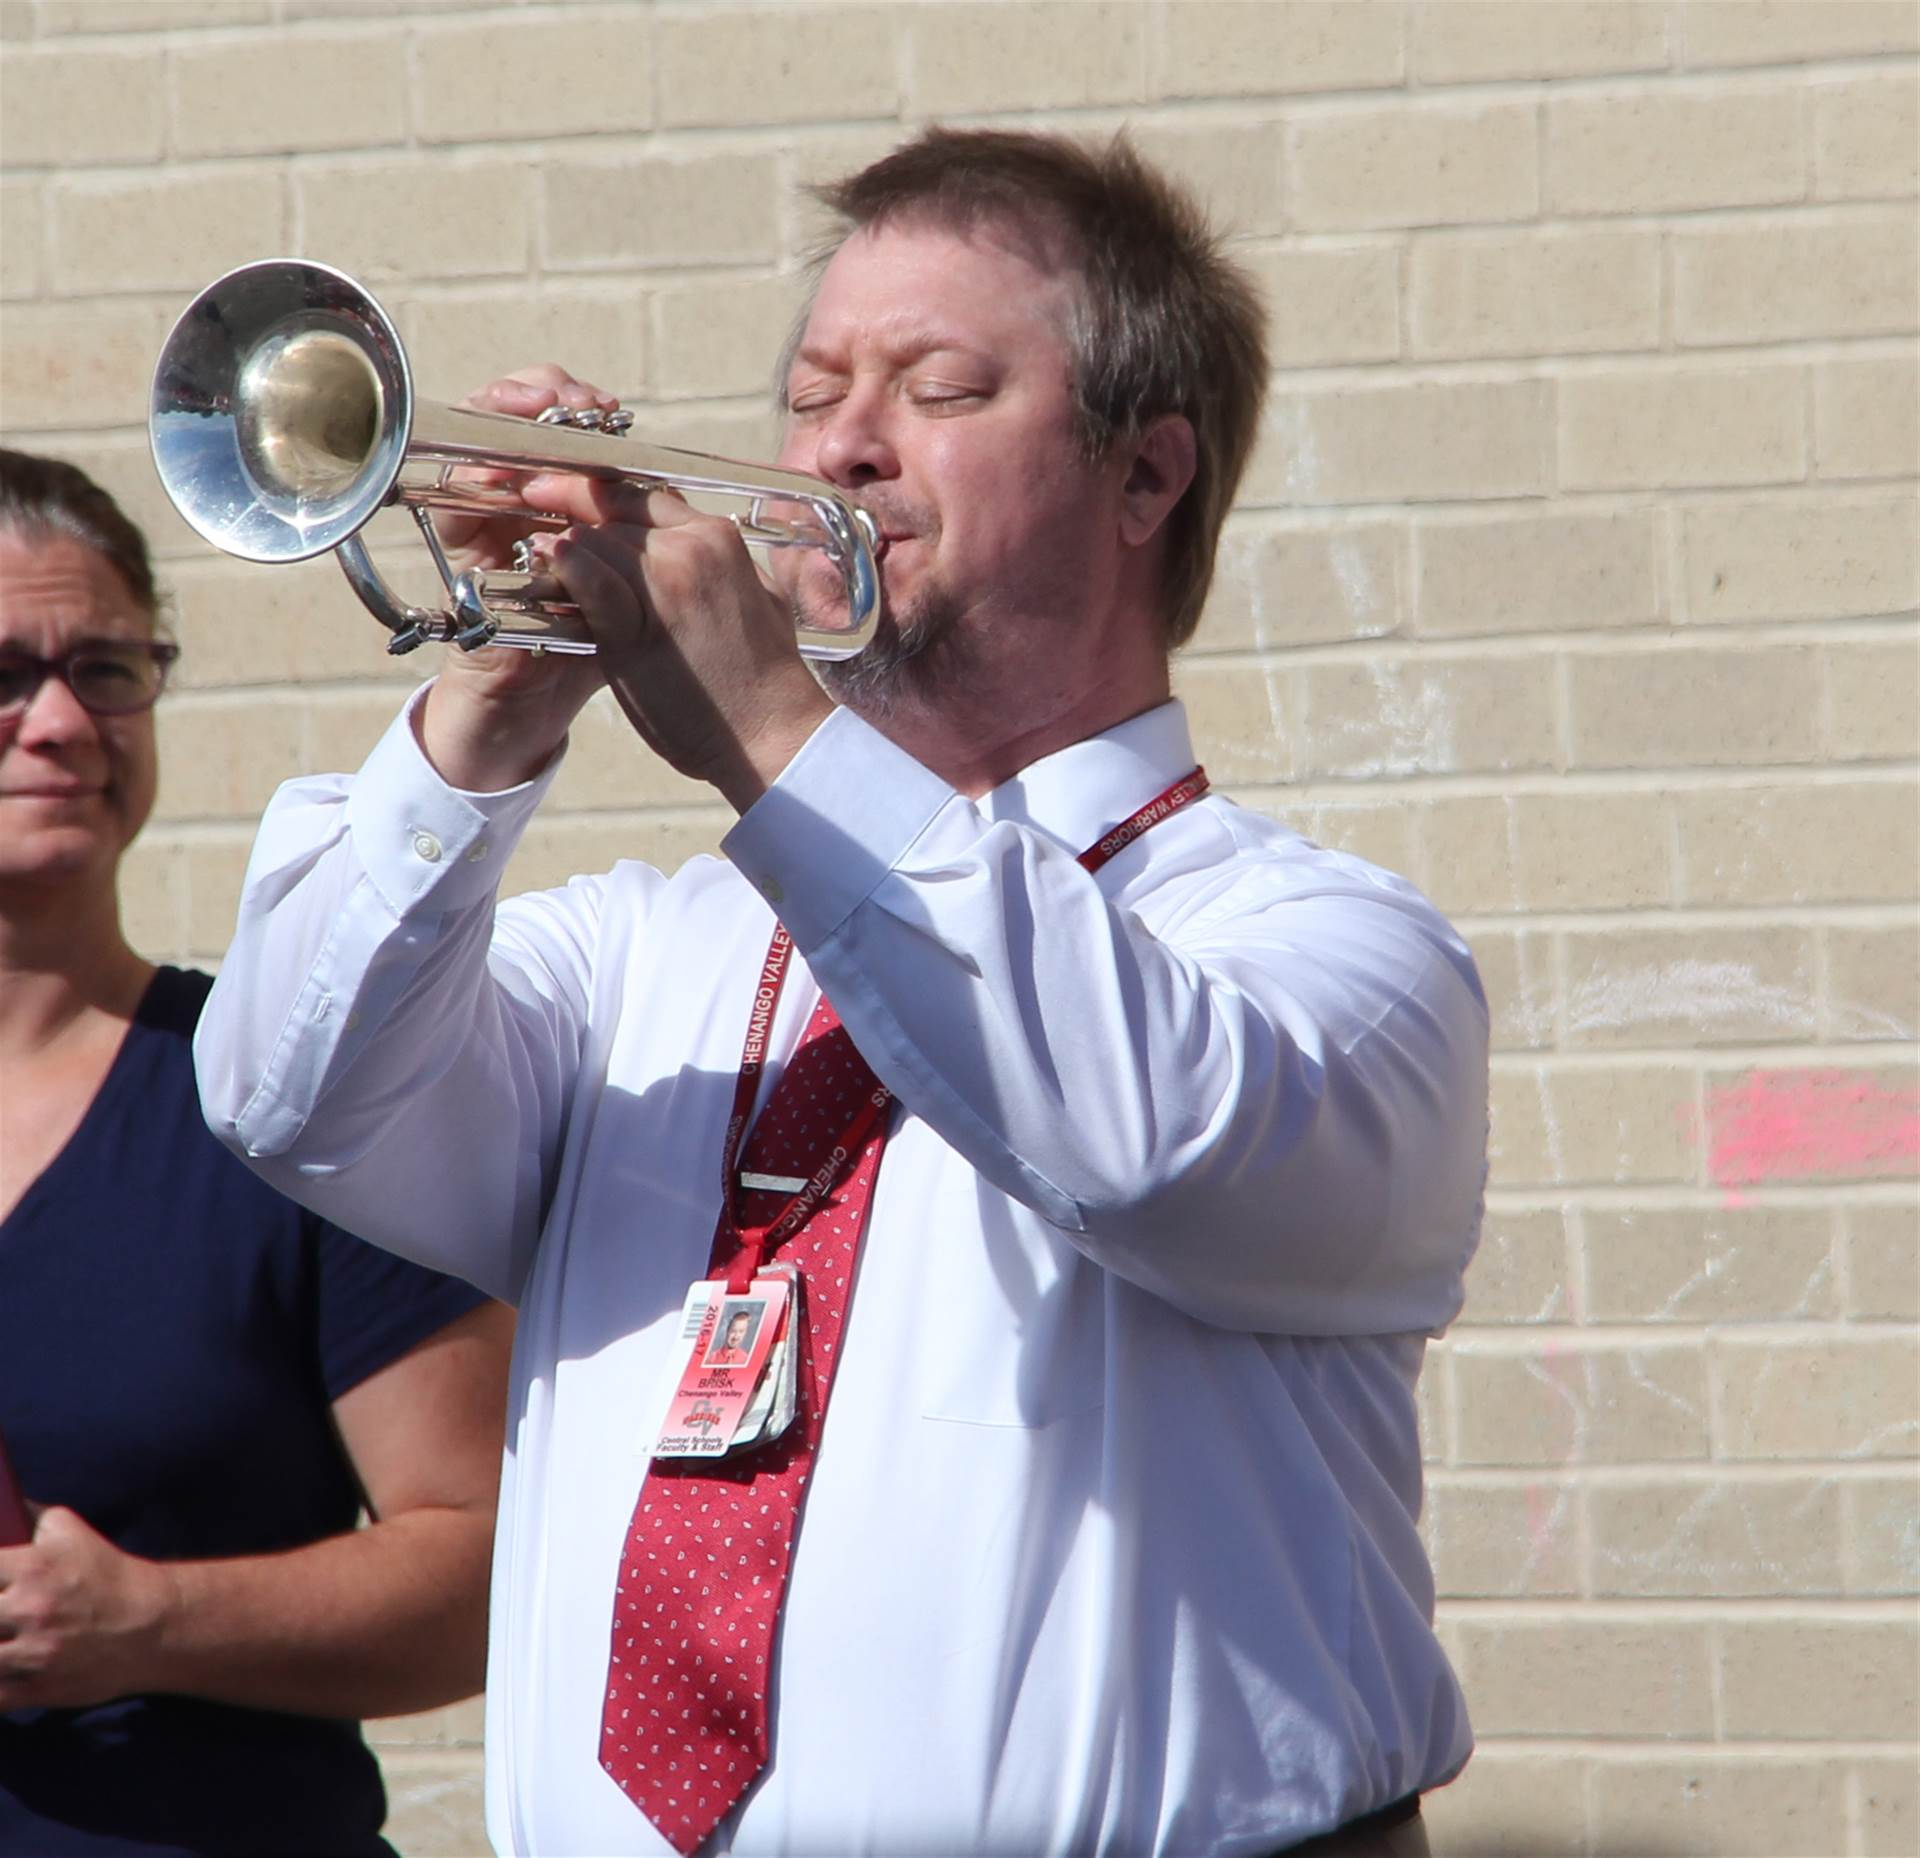 Mr. Brisk plays the trumpet at Flag Day Event